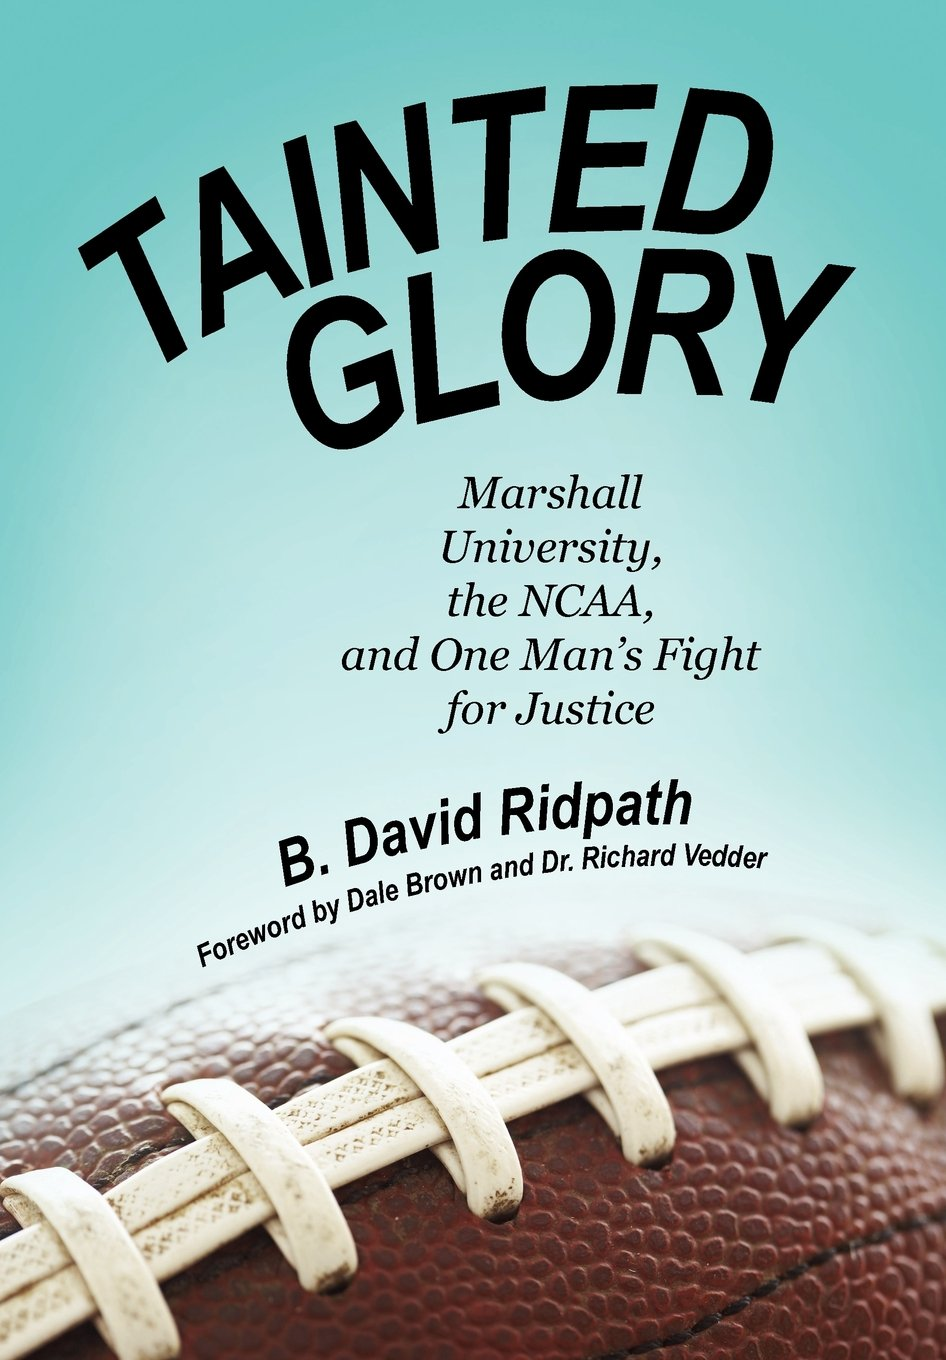 Read Online Tainted Glory: Marshall University, the NCAA, and One Man's Fight for Justice ePub fb2 ebook